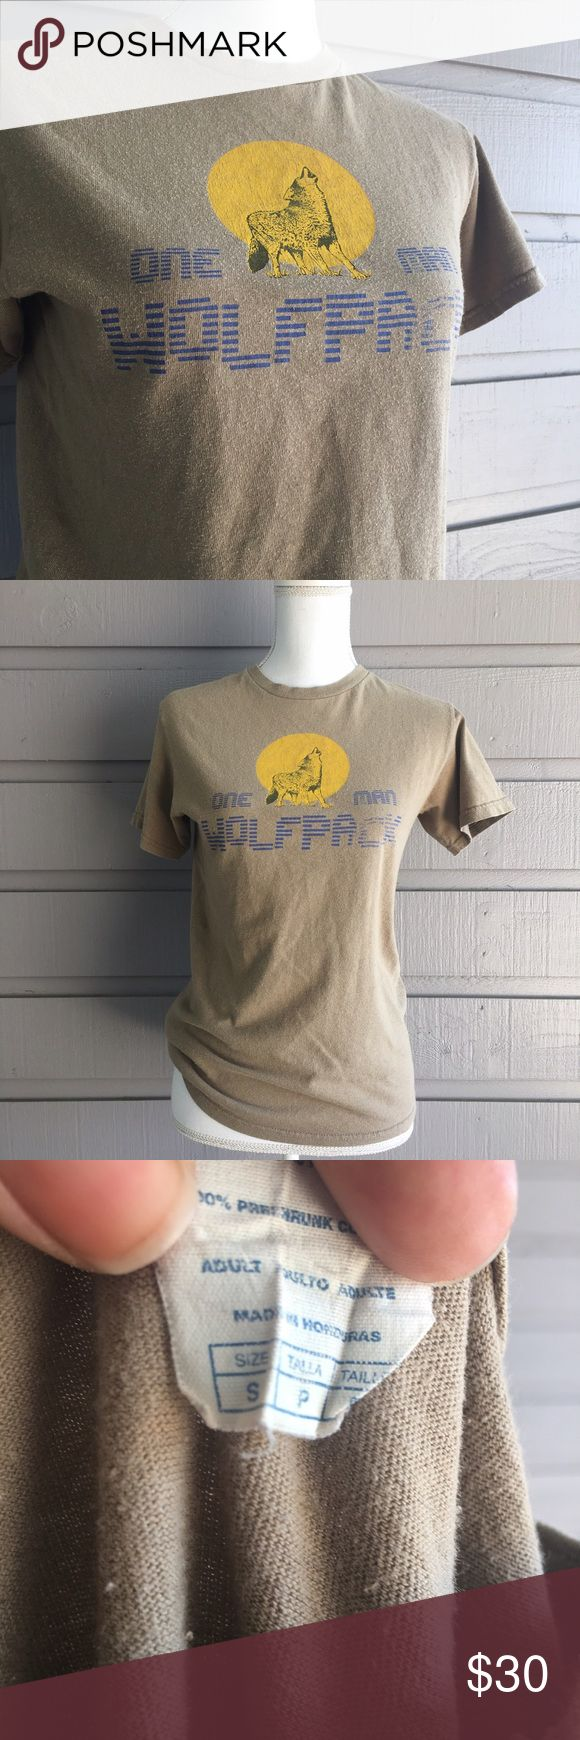 One man wolf pack vintage tshirt Great vintage condition! Minor pilling no stains. Questions welcome, all offers considered! Vintage Shirts Tees - Short Sleeve